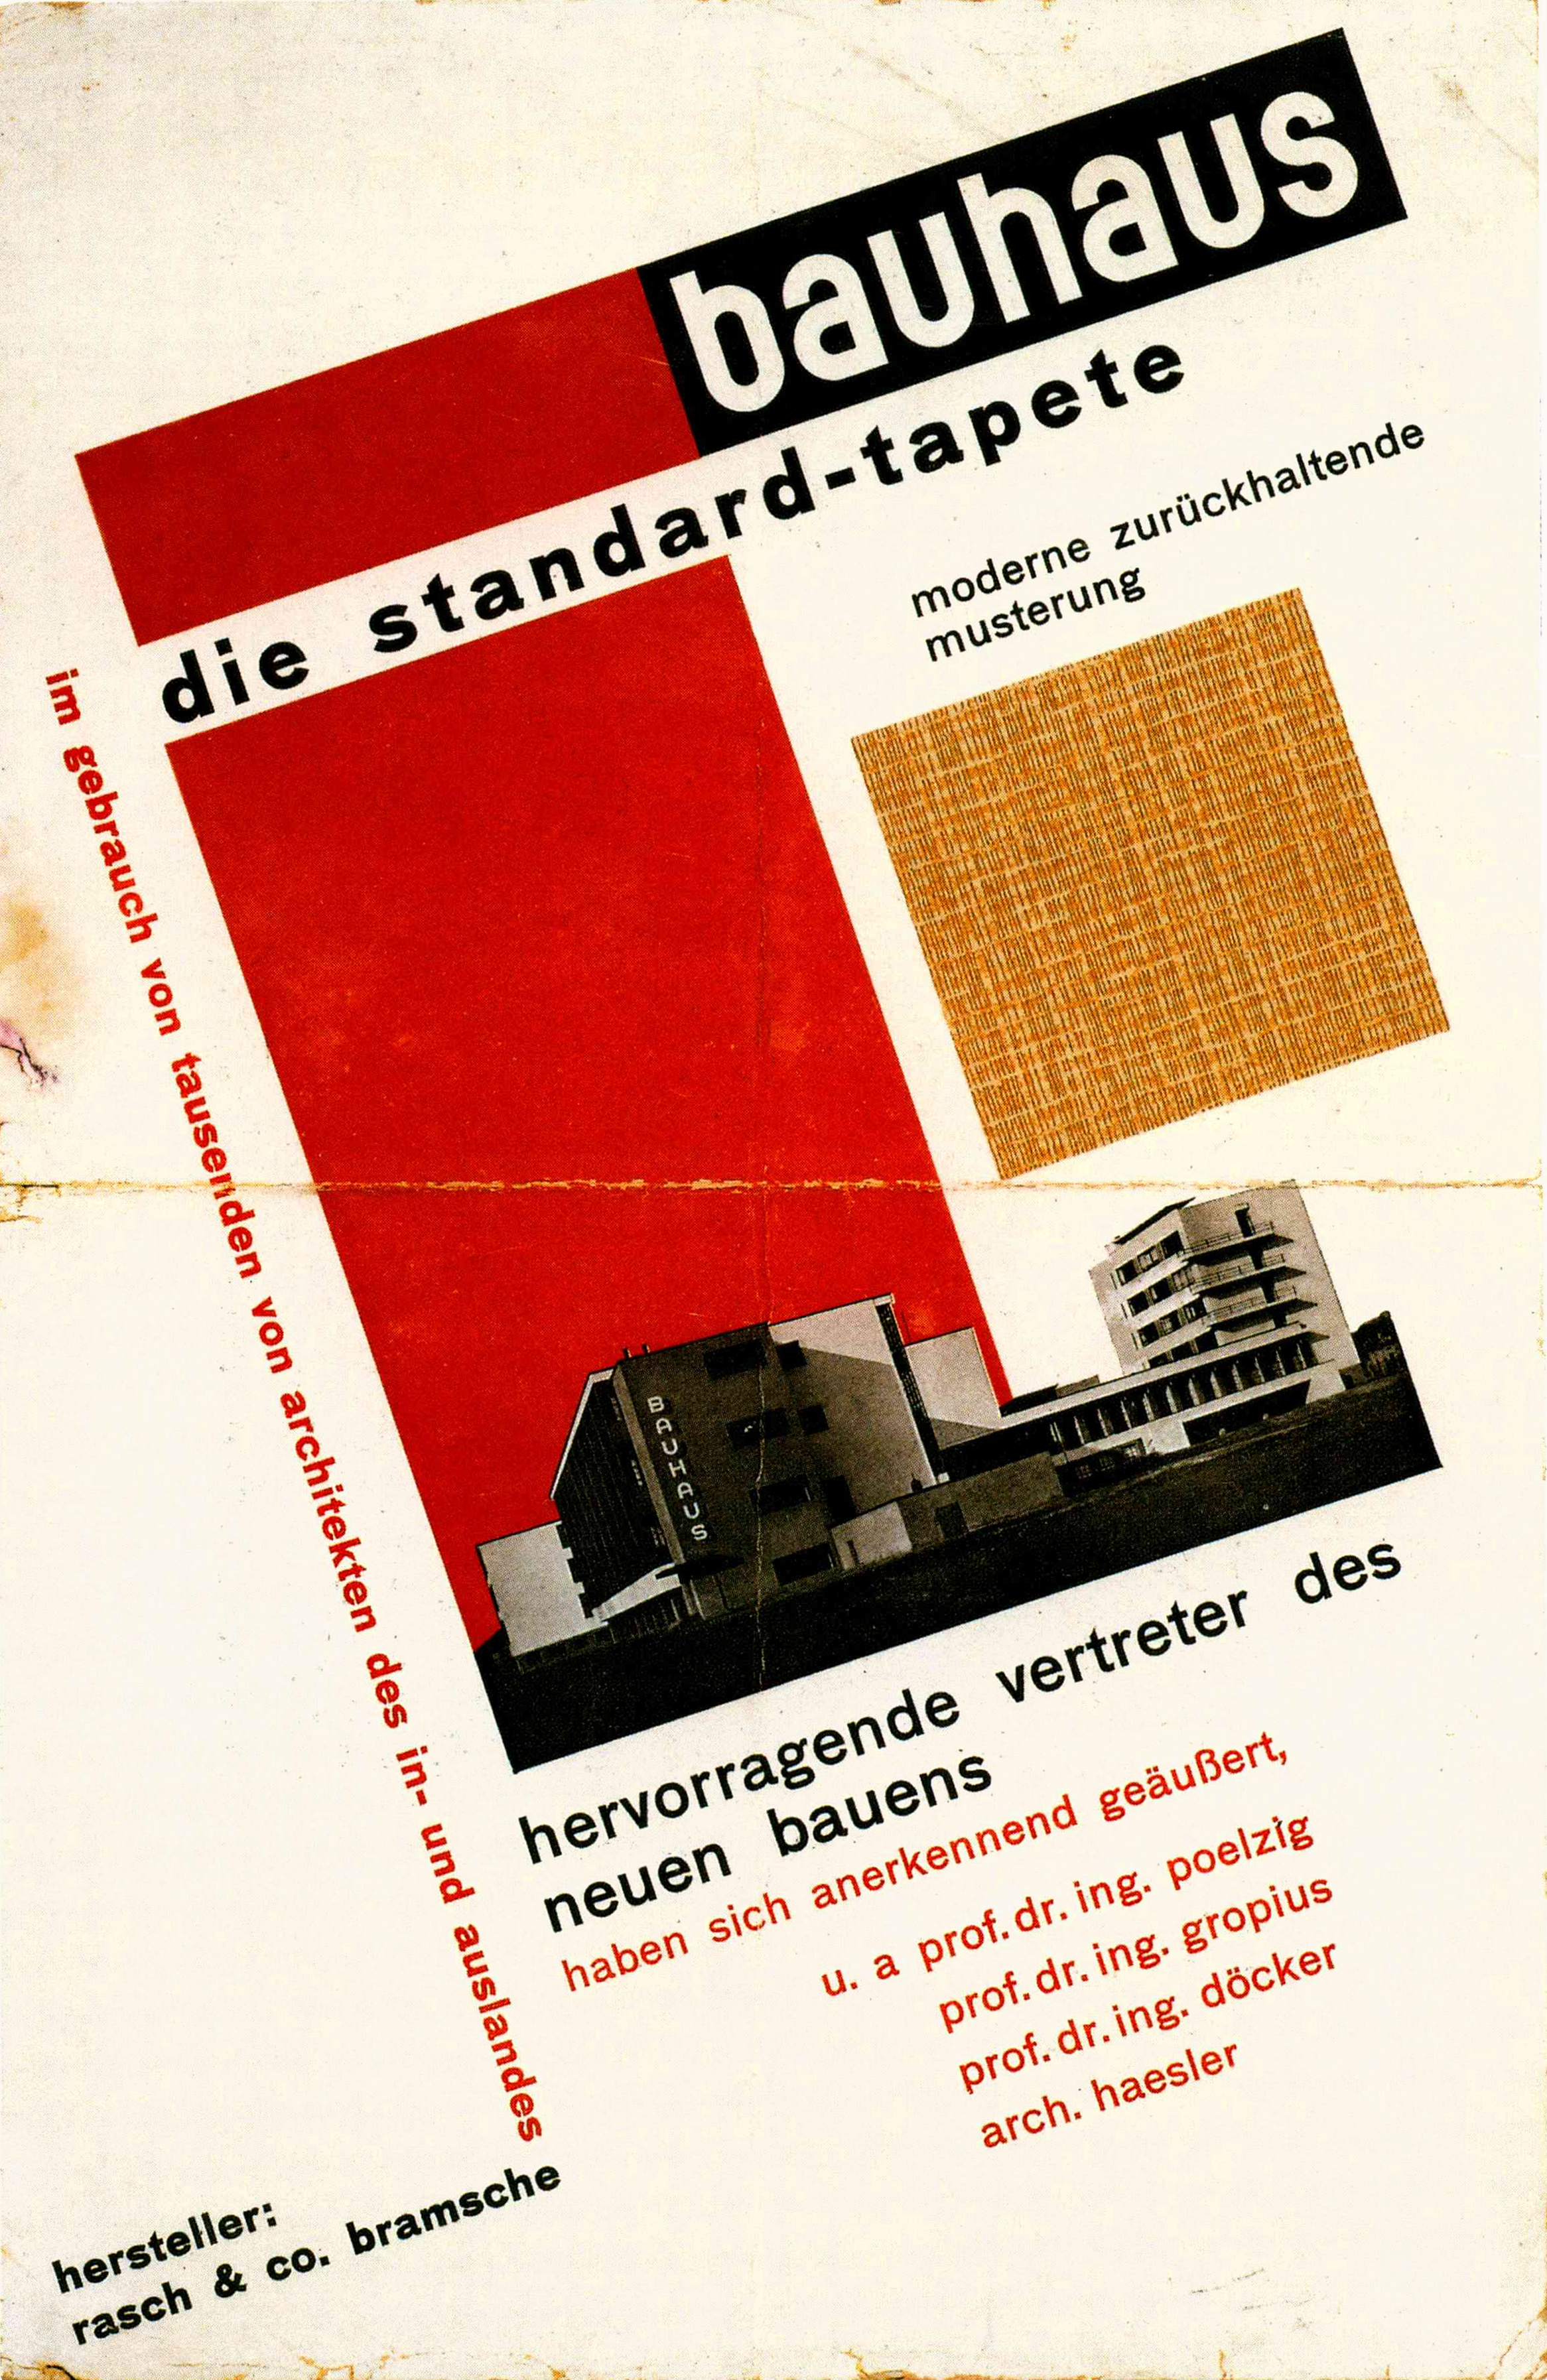 Herbert Bayer, Invitation to the inauguration of the Bauhaus building, designed by Walter Gropius, for December 4-5 1926, letterpress on paper 14.4x34.9cm